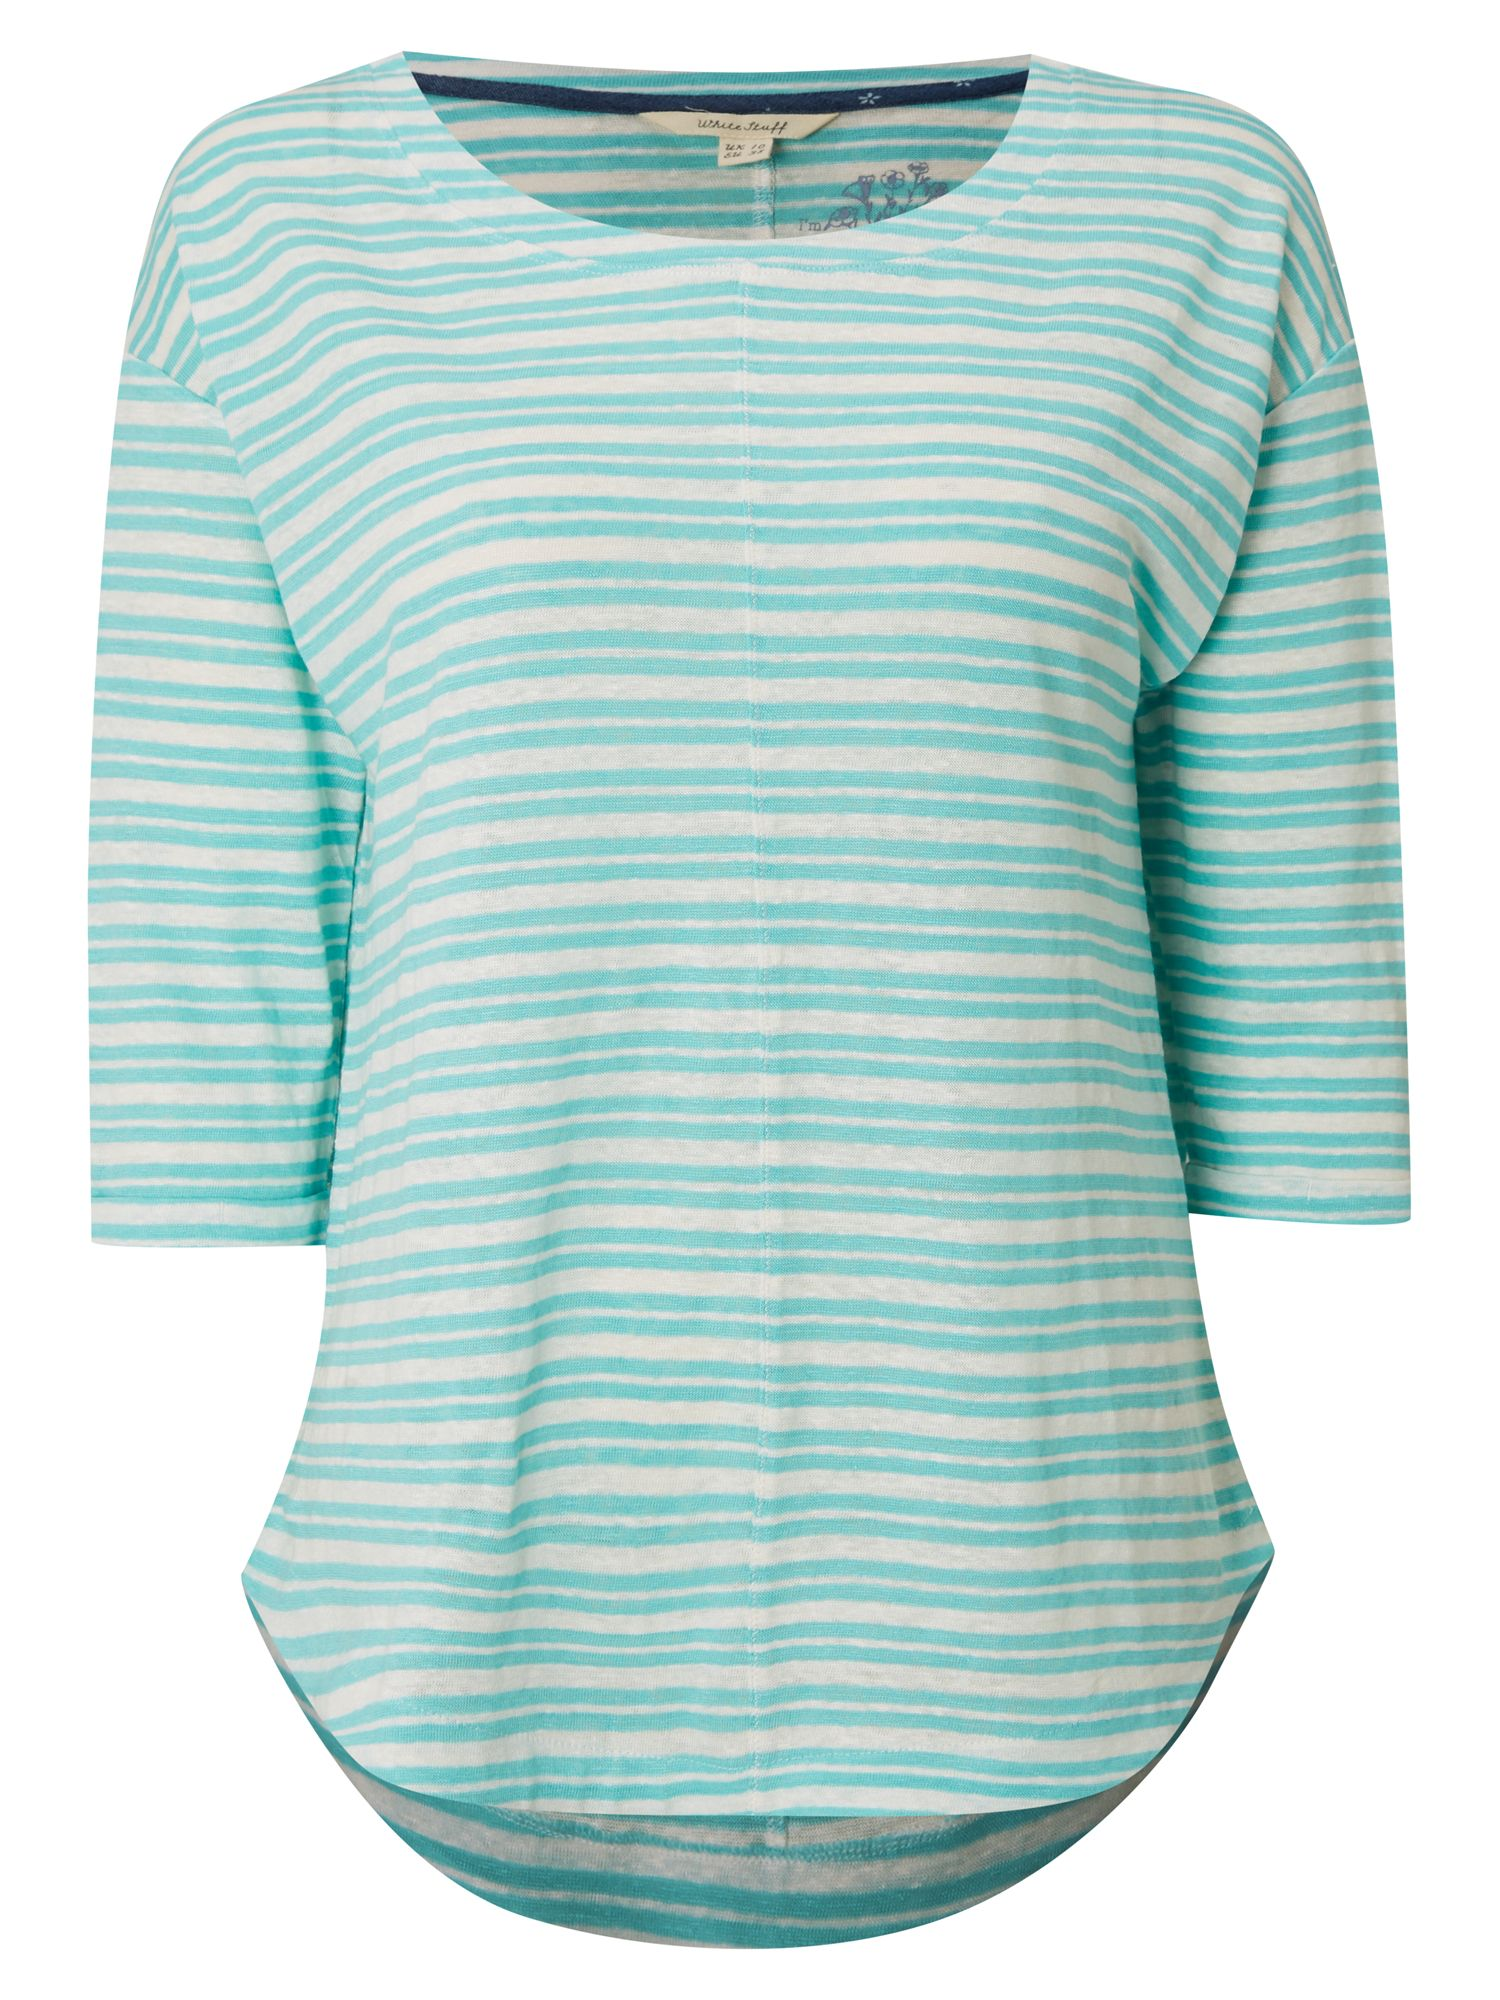 White Stuff Hadley Stripe Jersey Tee, Green